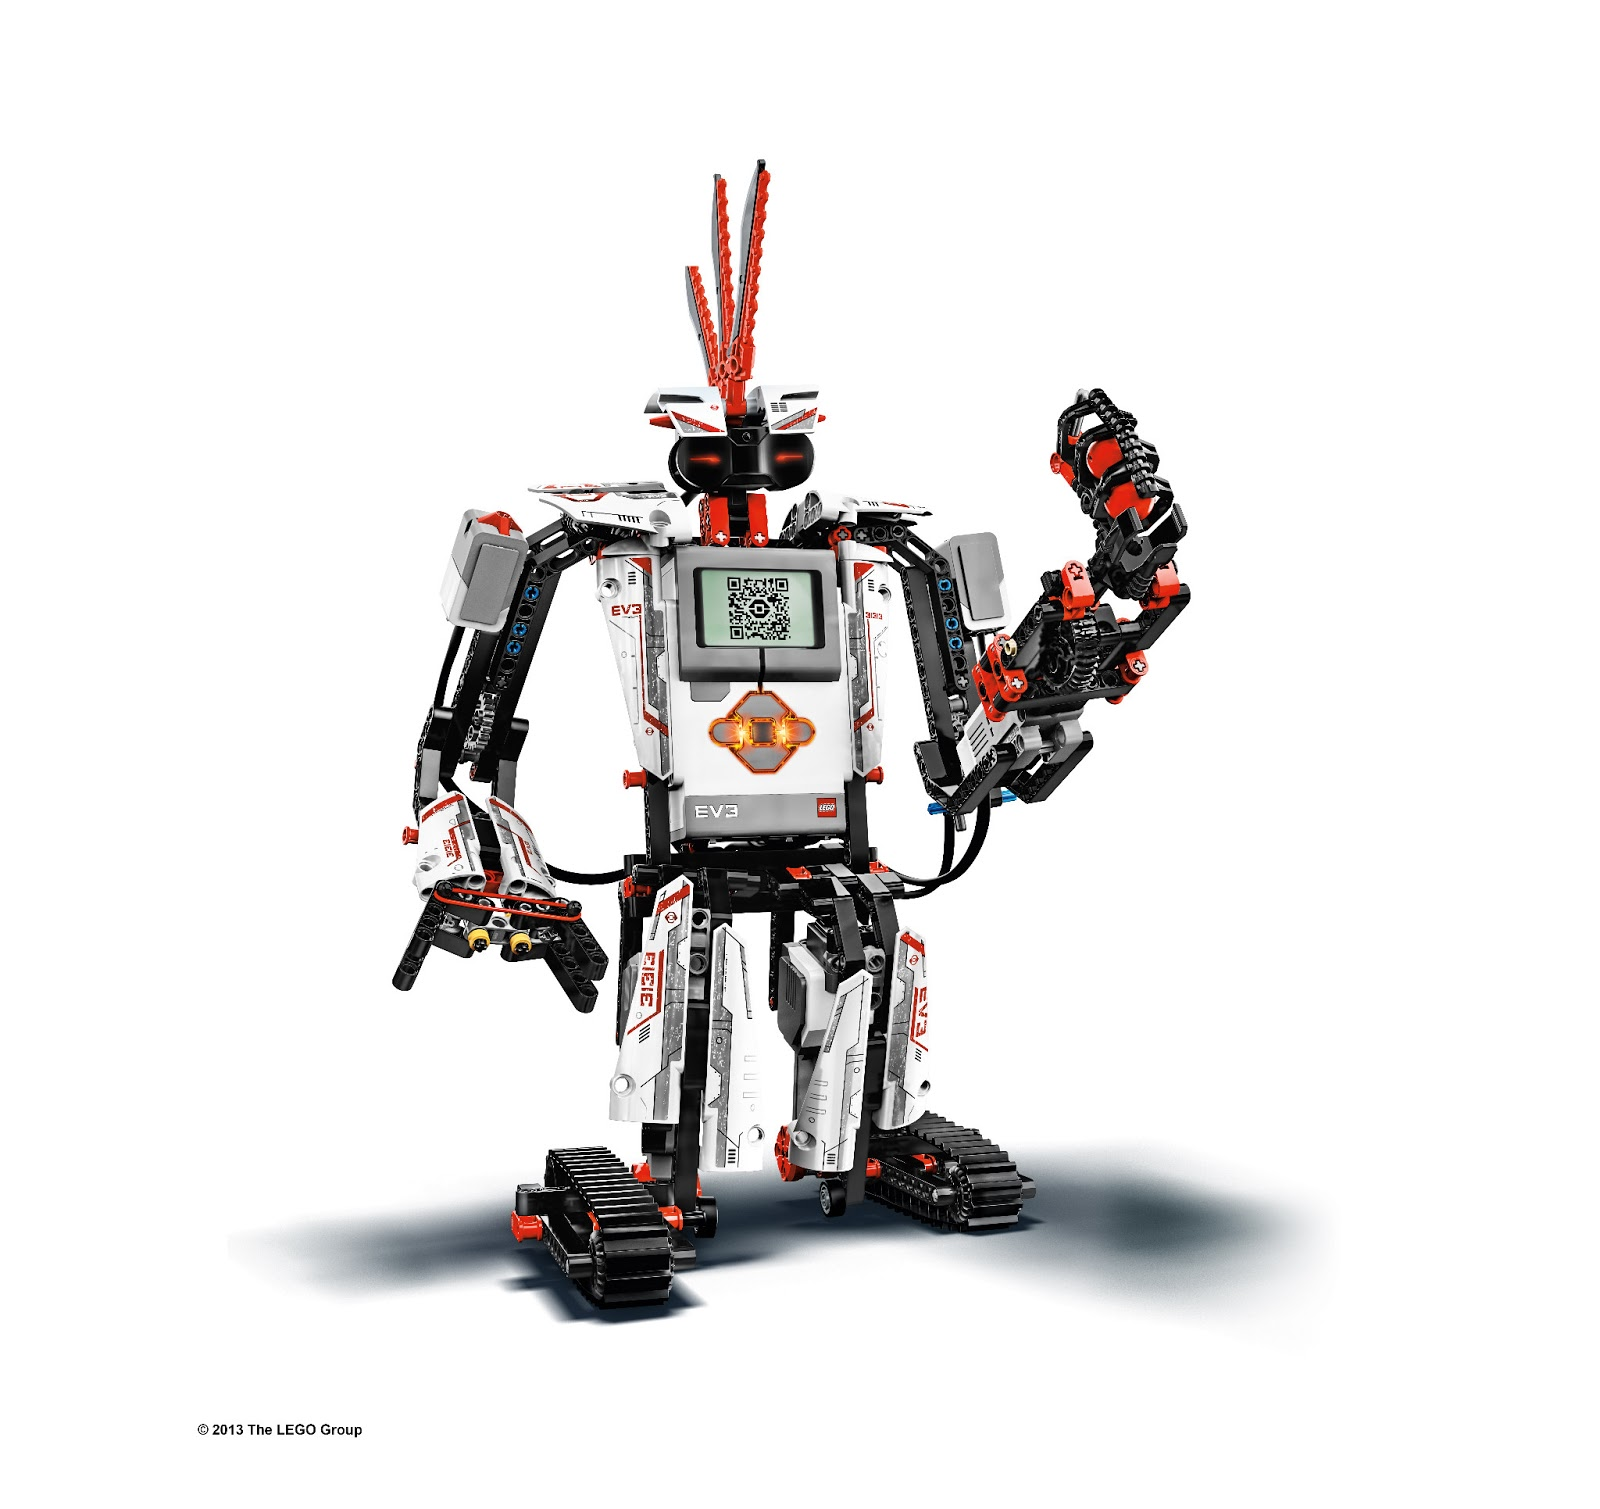 The 5 main robots from EV3 Home Edition